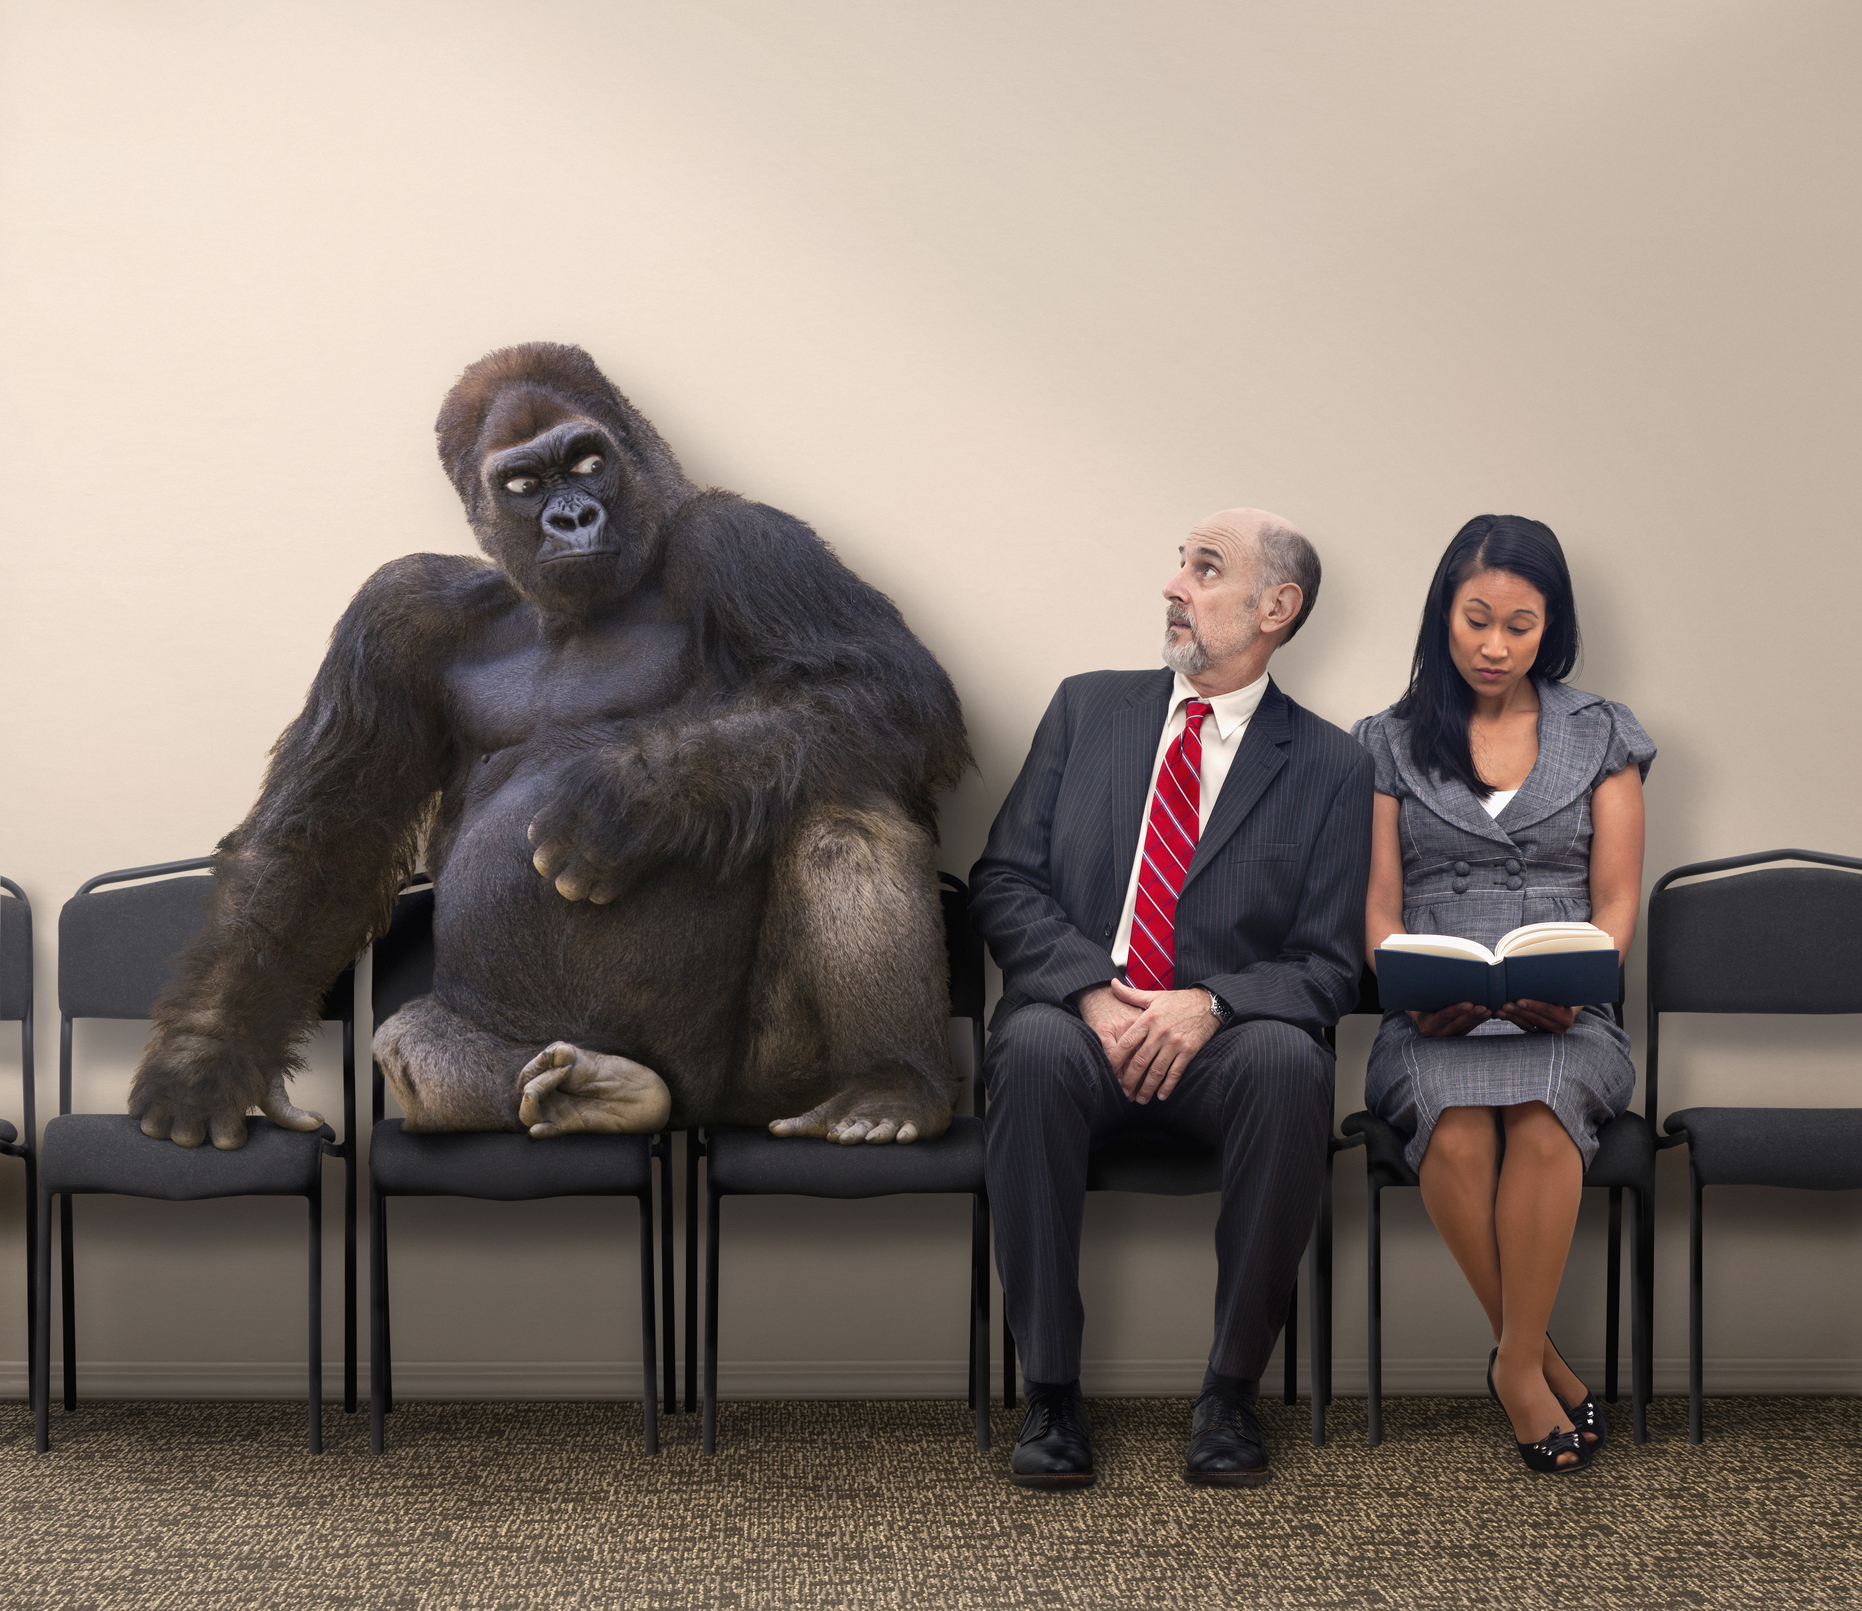 gorilla next to two people